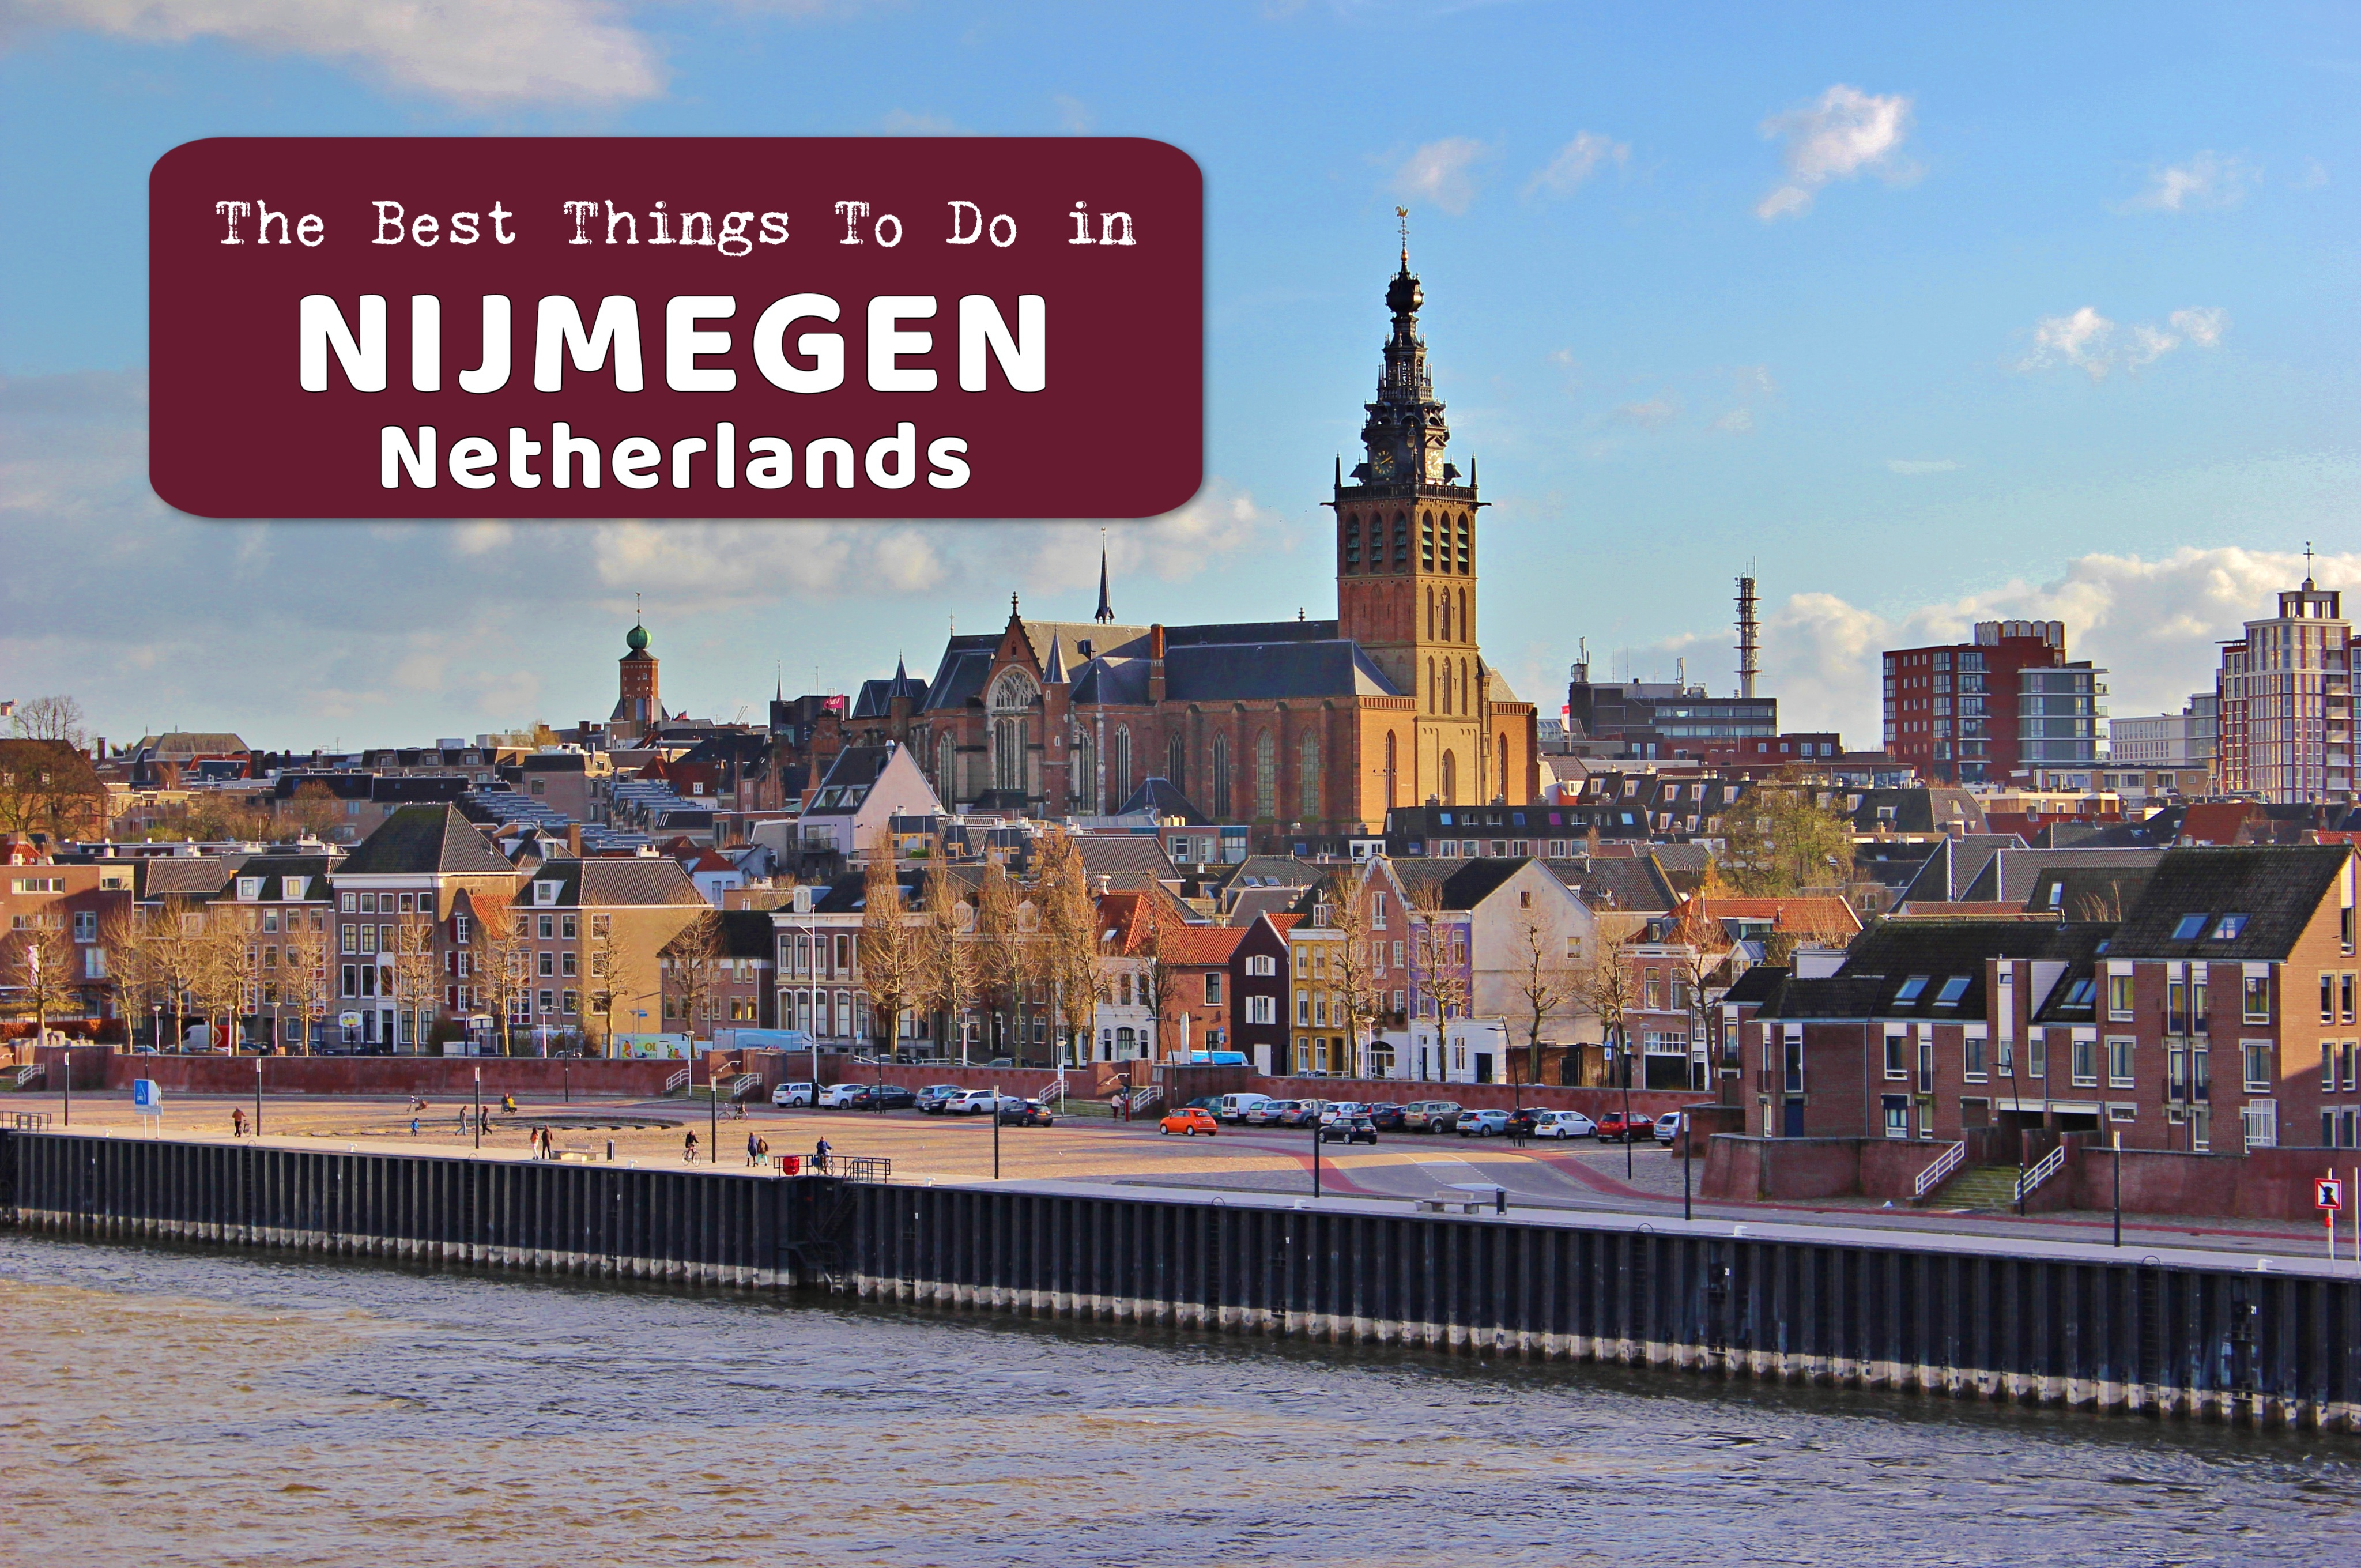 Things To Do in Nijmegen Netherlands by JetSettingFools.com